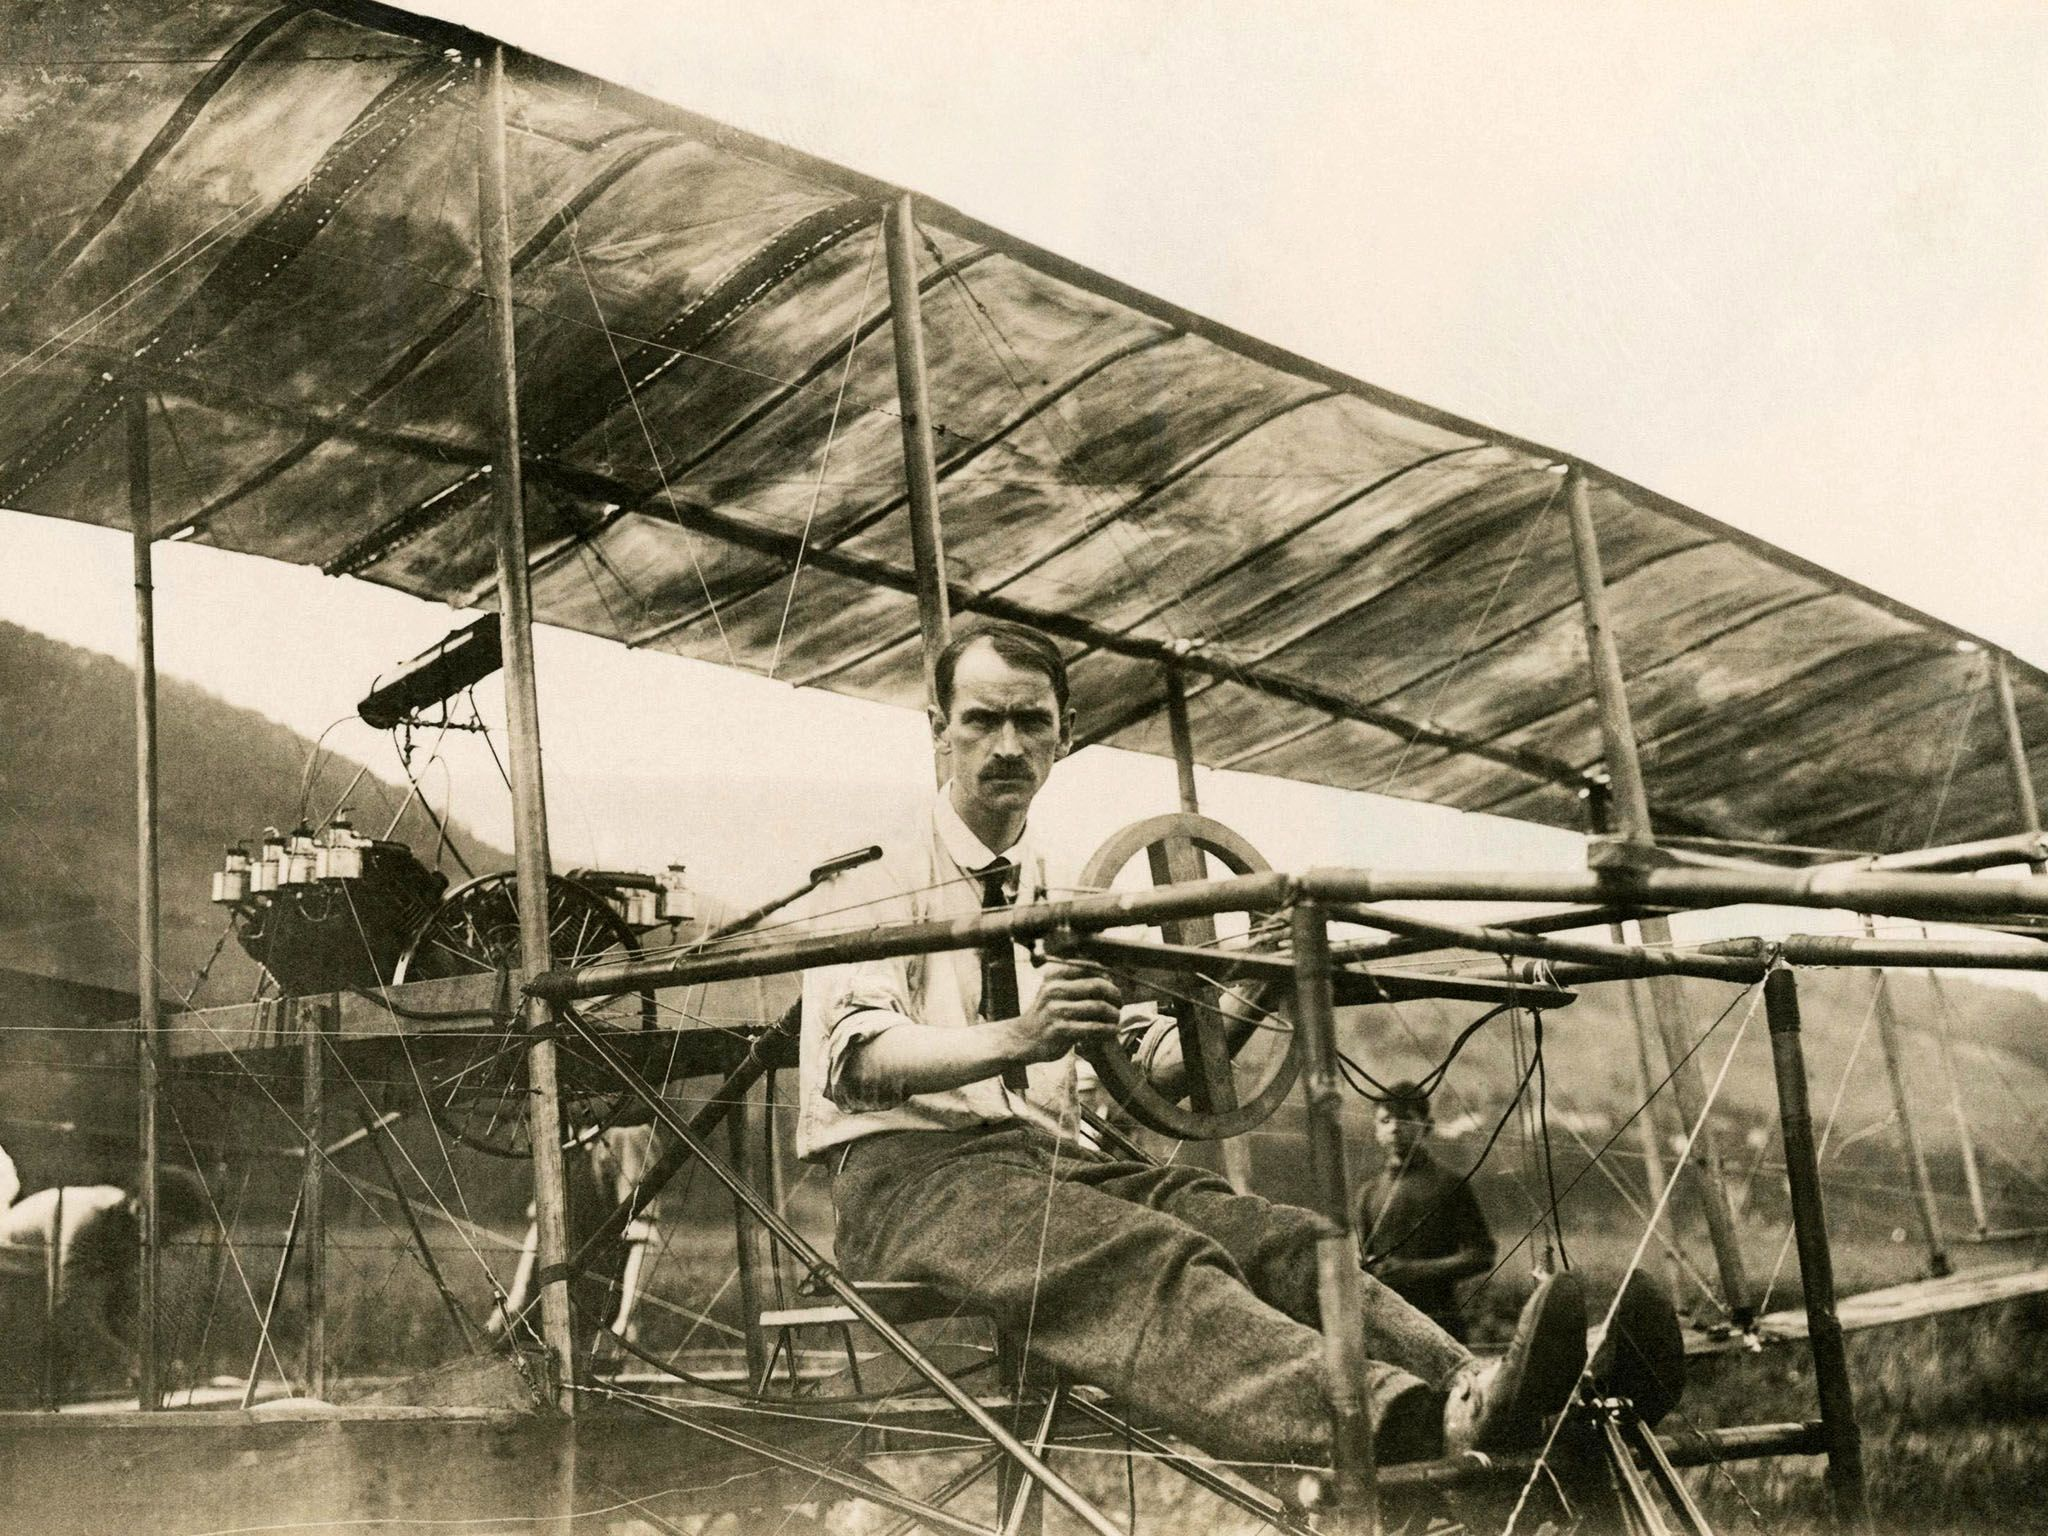 Glenn Curtiss in his Biplane, July 4, 1908. This image is from American Genius. [Photo of the day - August 2015]